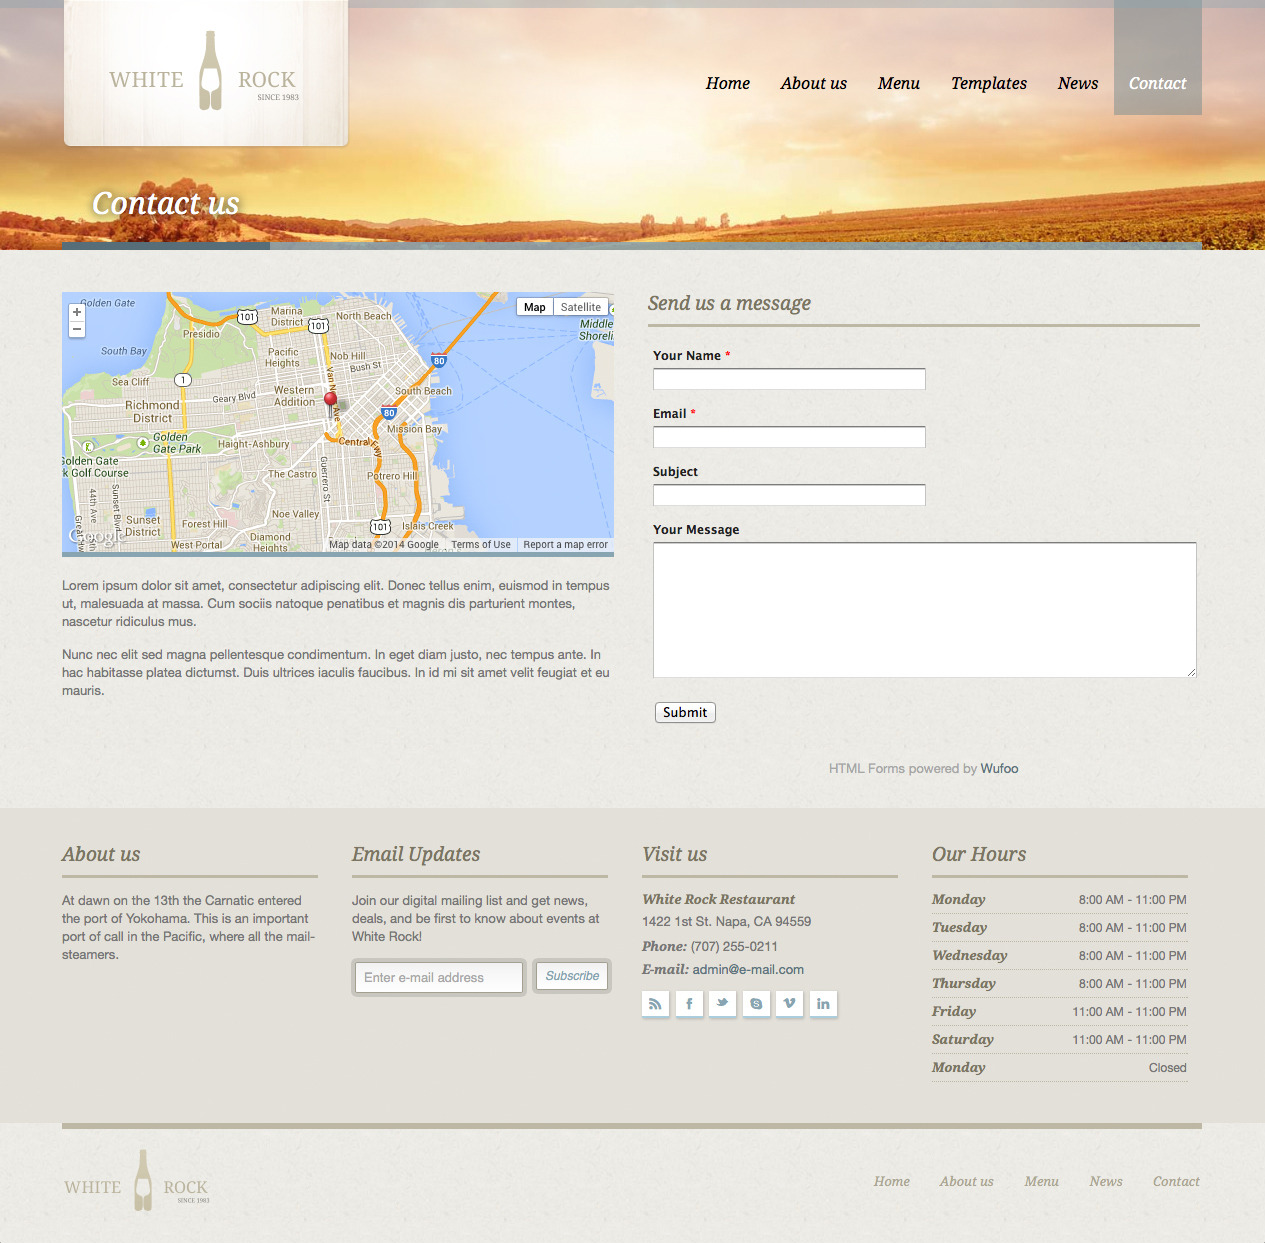 White Rock - Restaurant & Winery Site Template